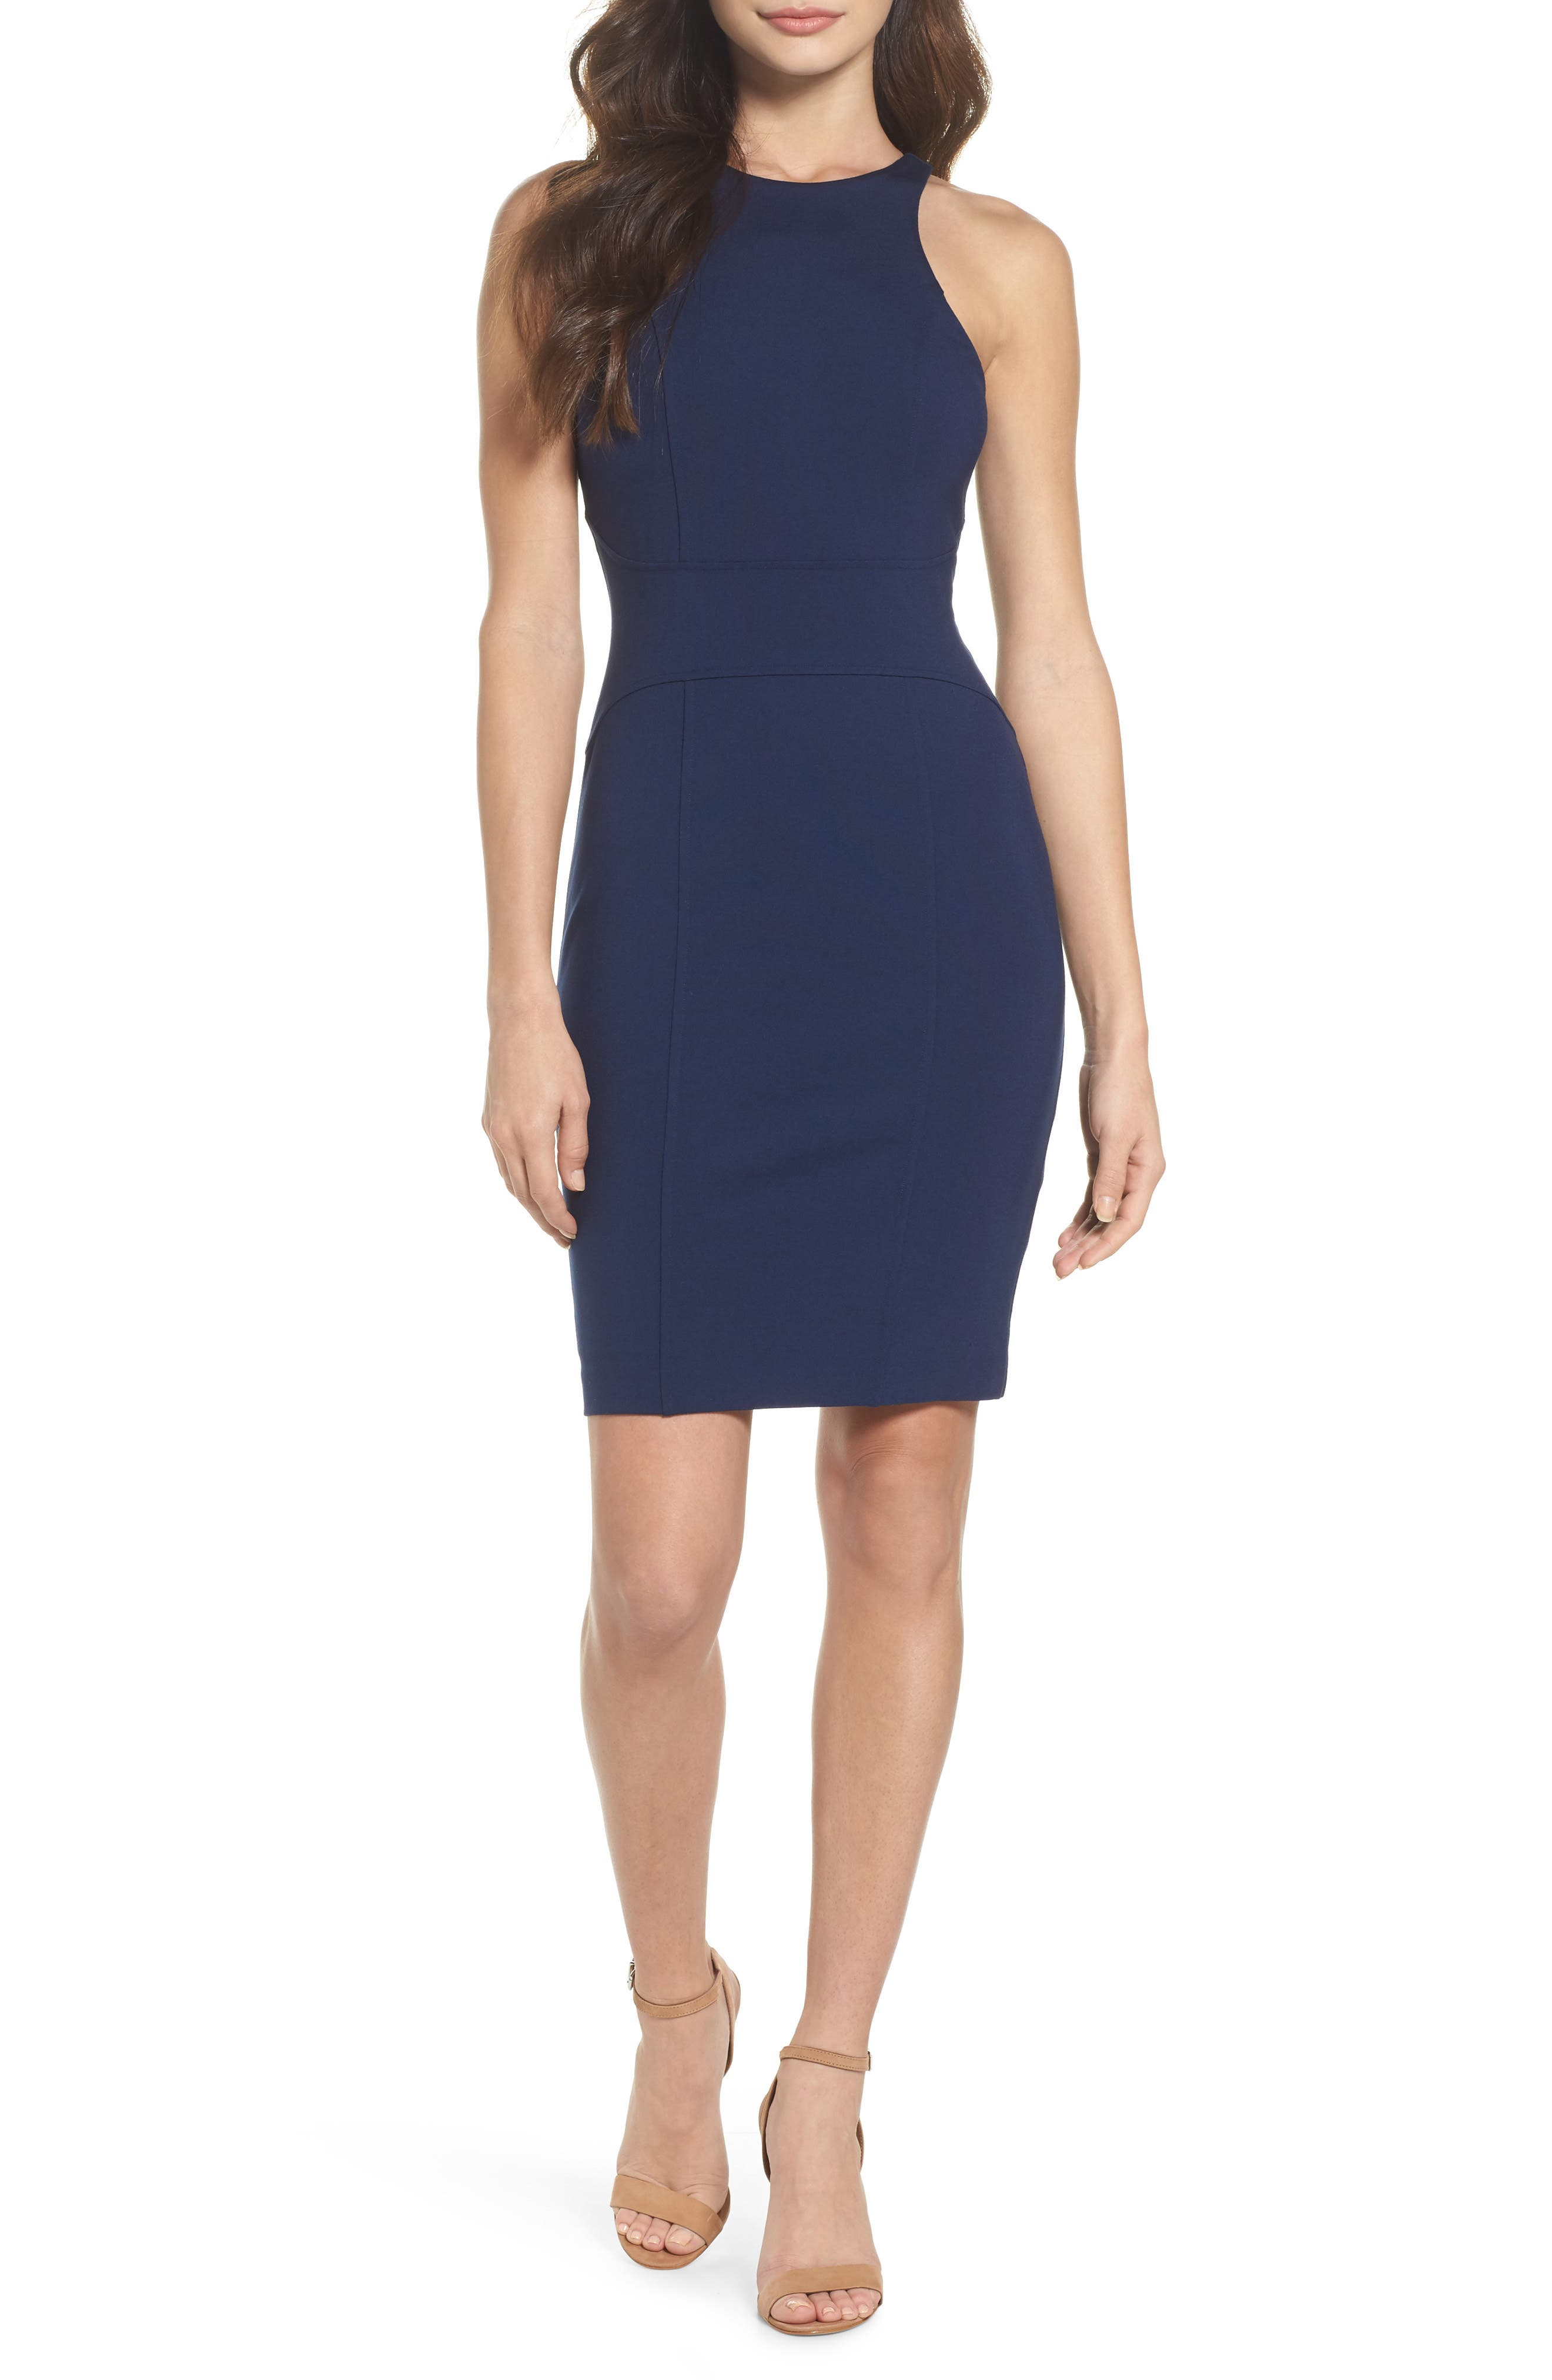 Ali & Jay You Ruin Me Sheath Dress (Nordstrom Exclusive)